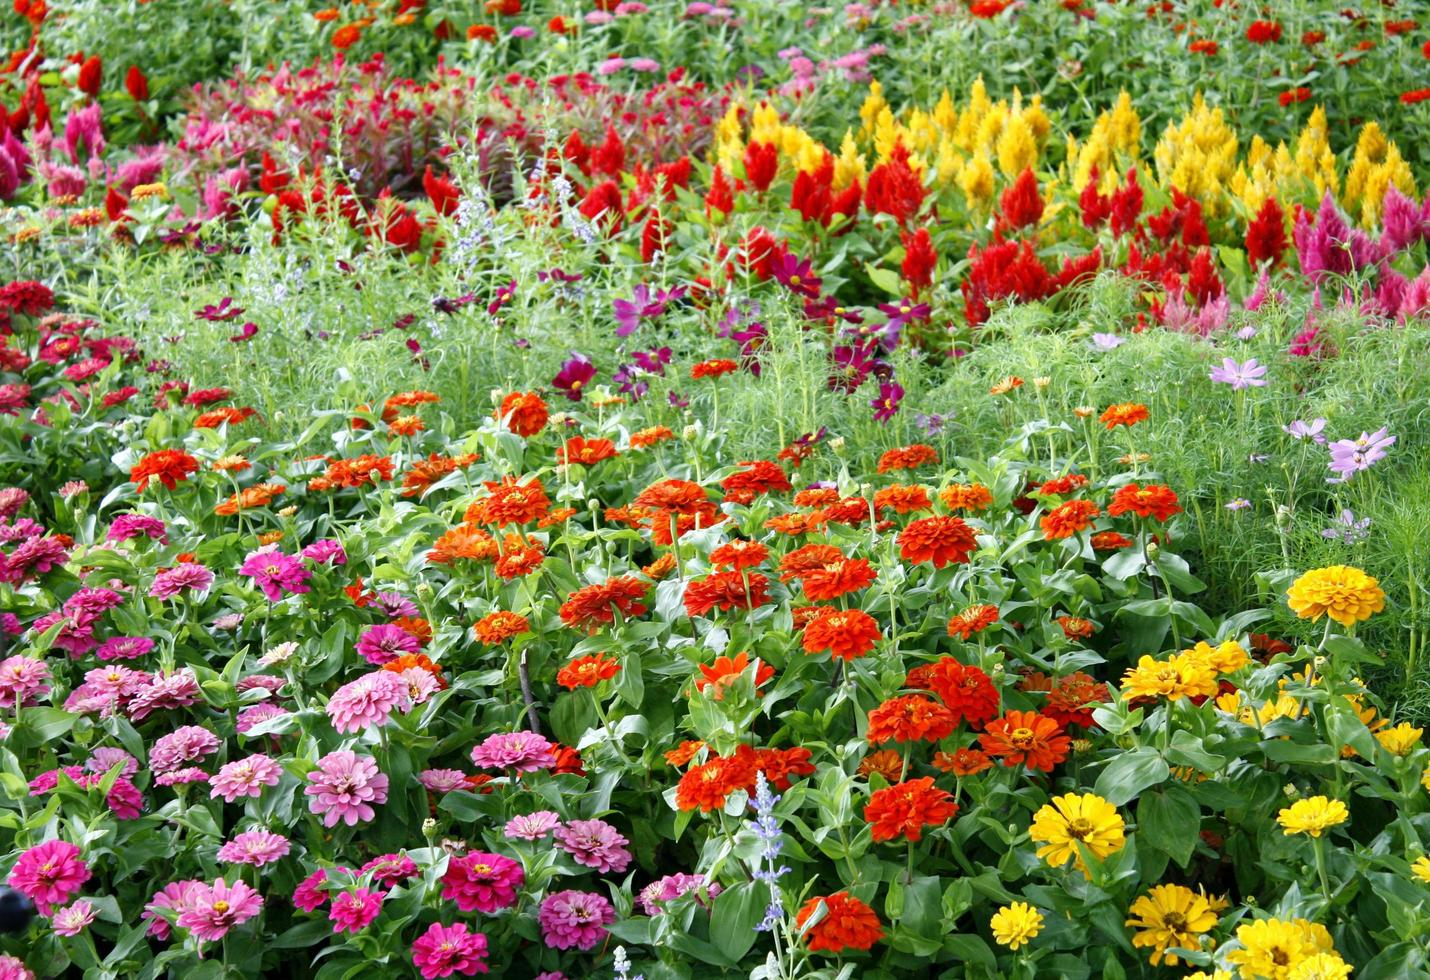 colorful flower in the garden photo